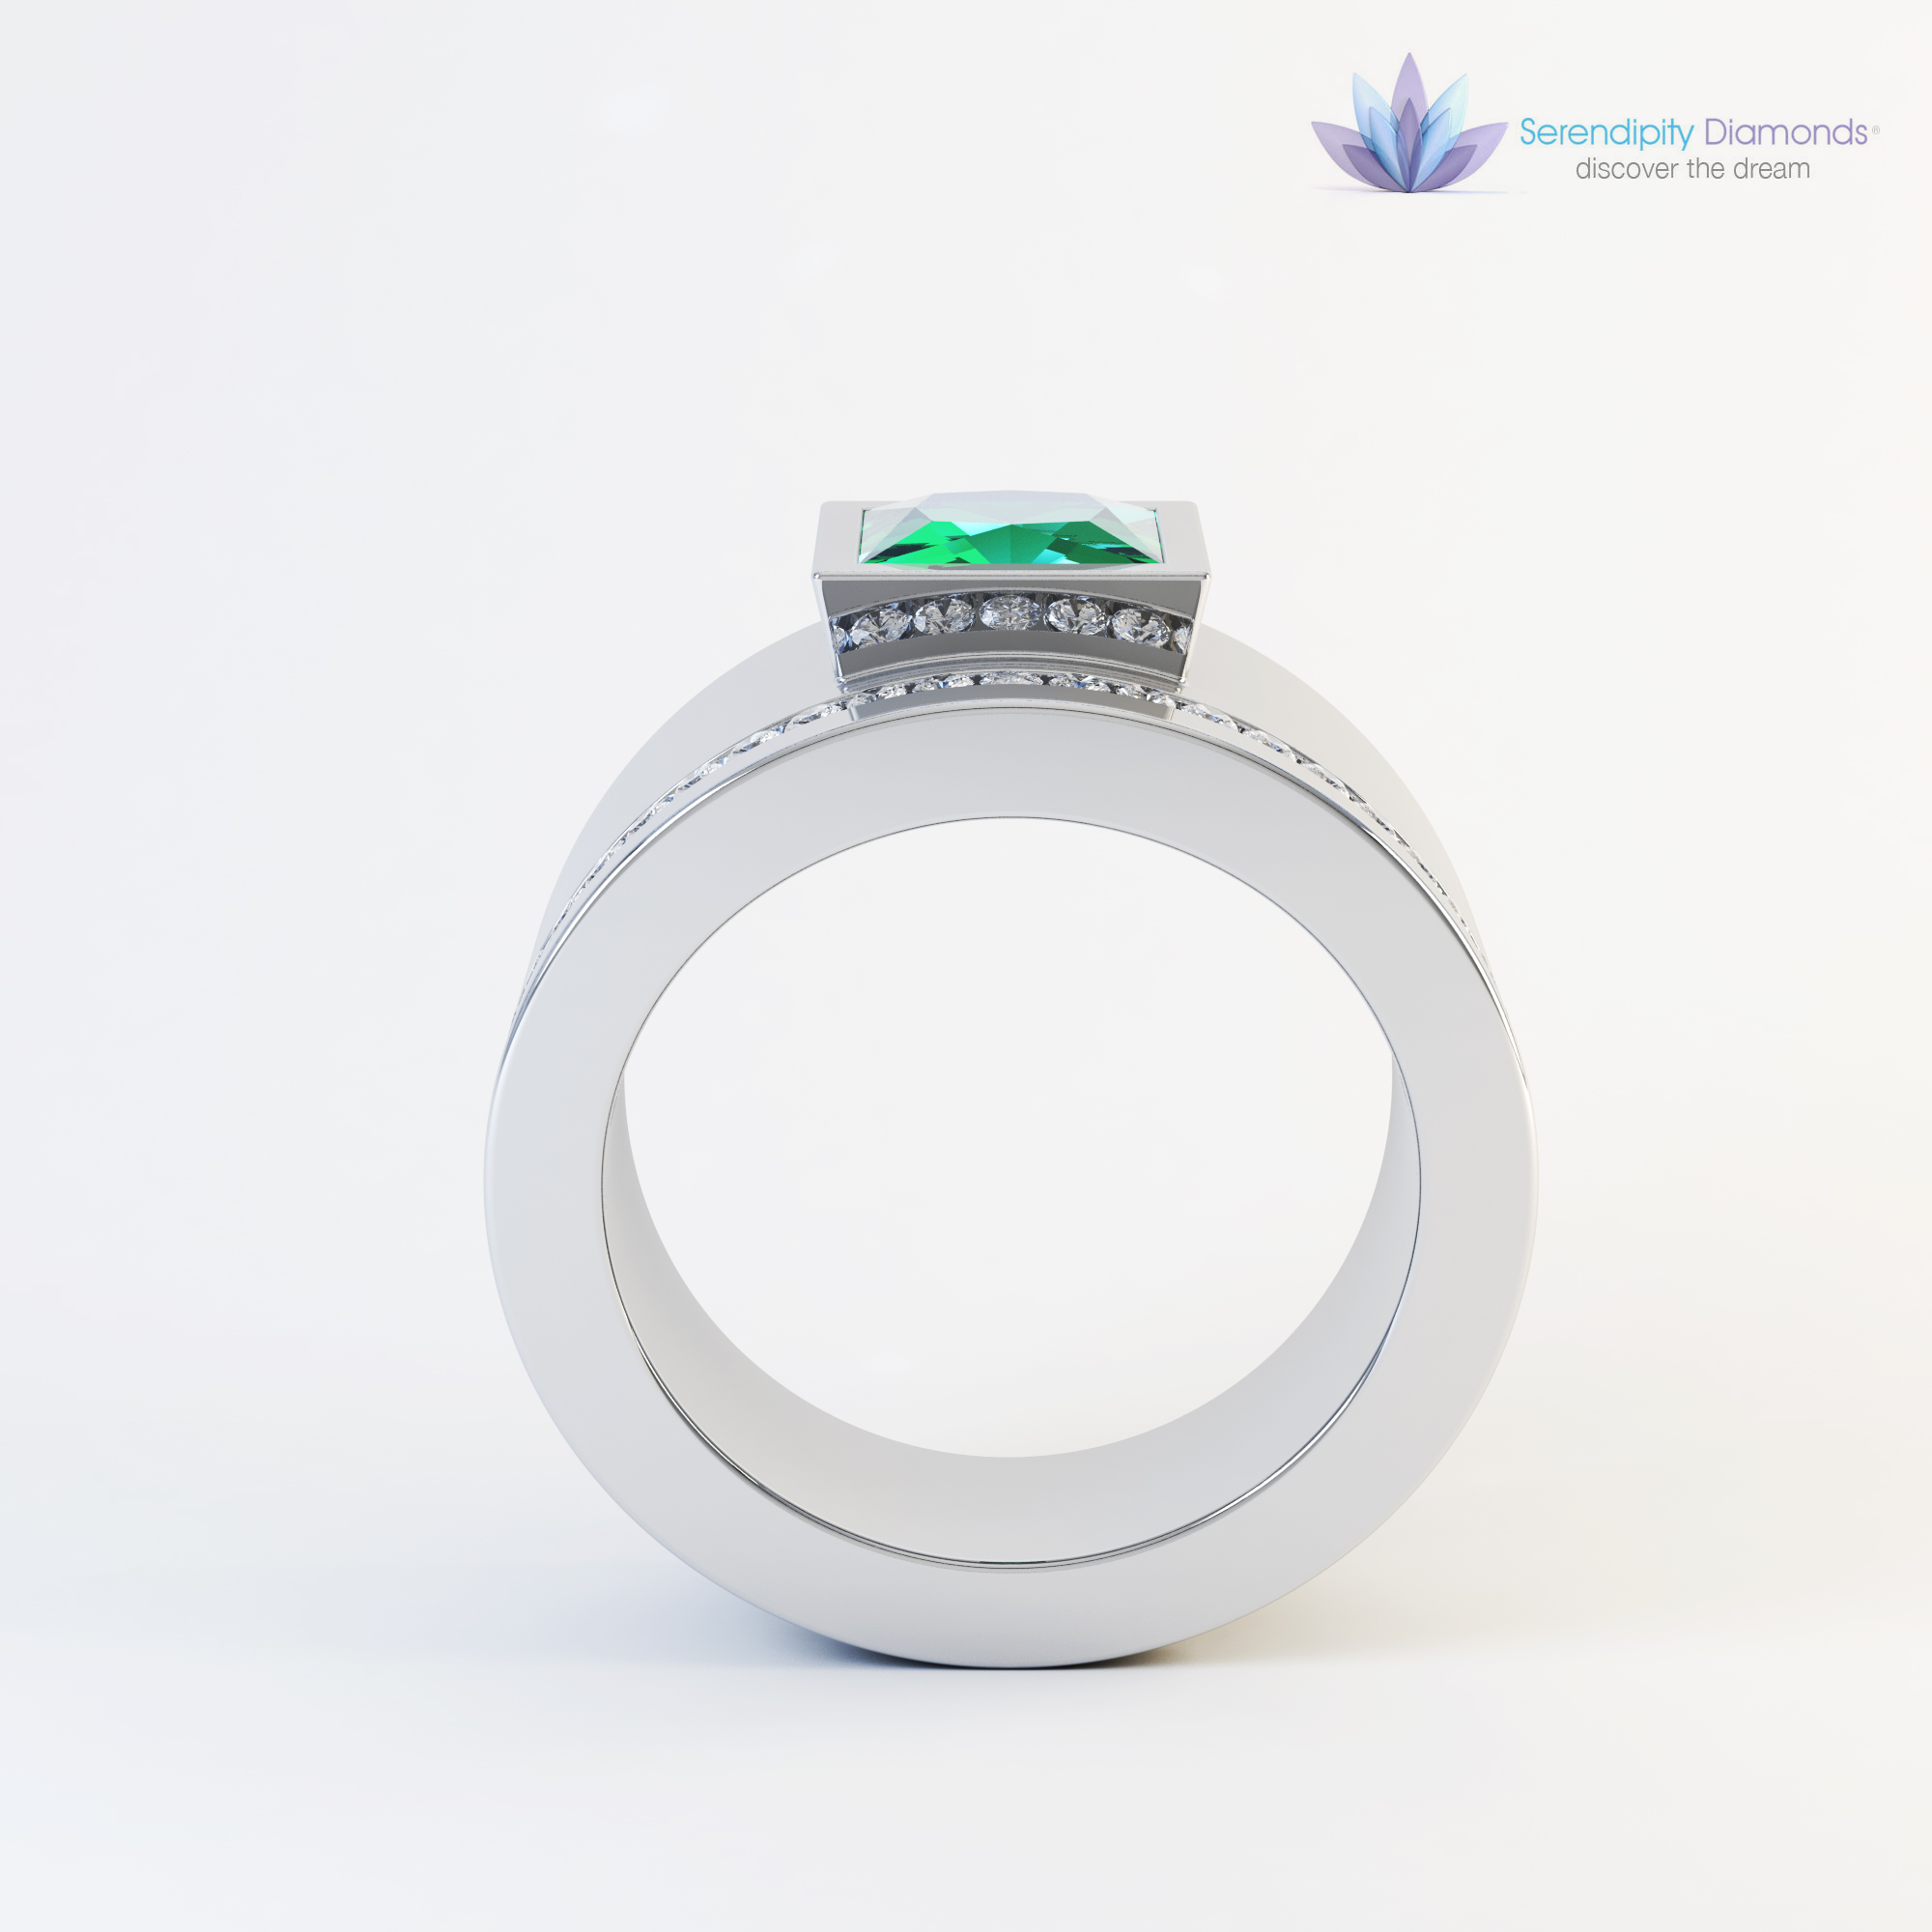 jewellery rendering from 3D CAD